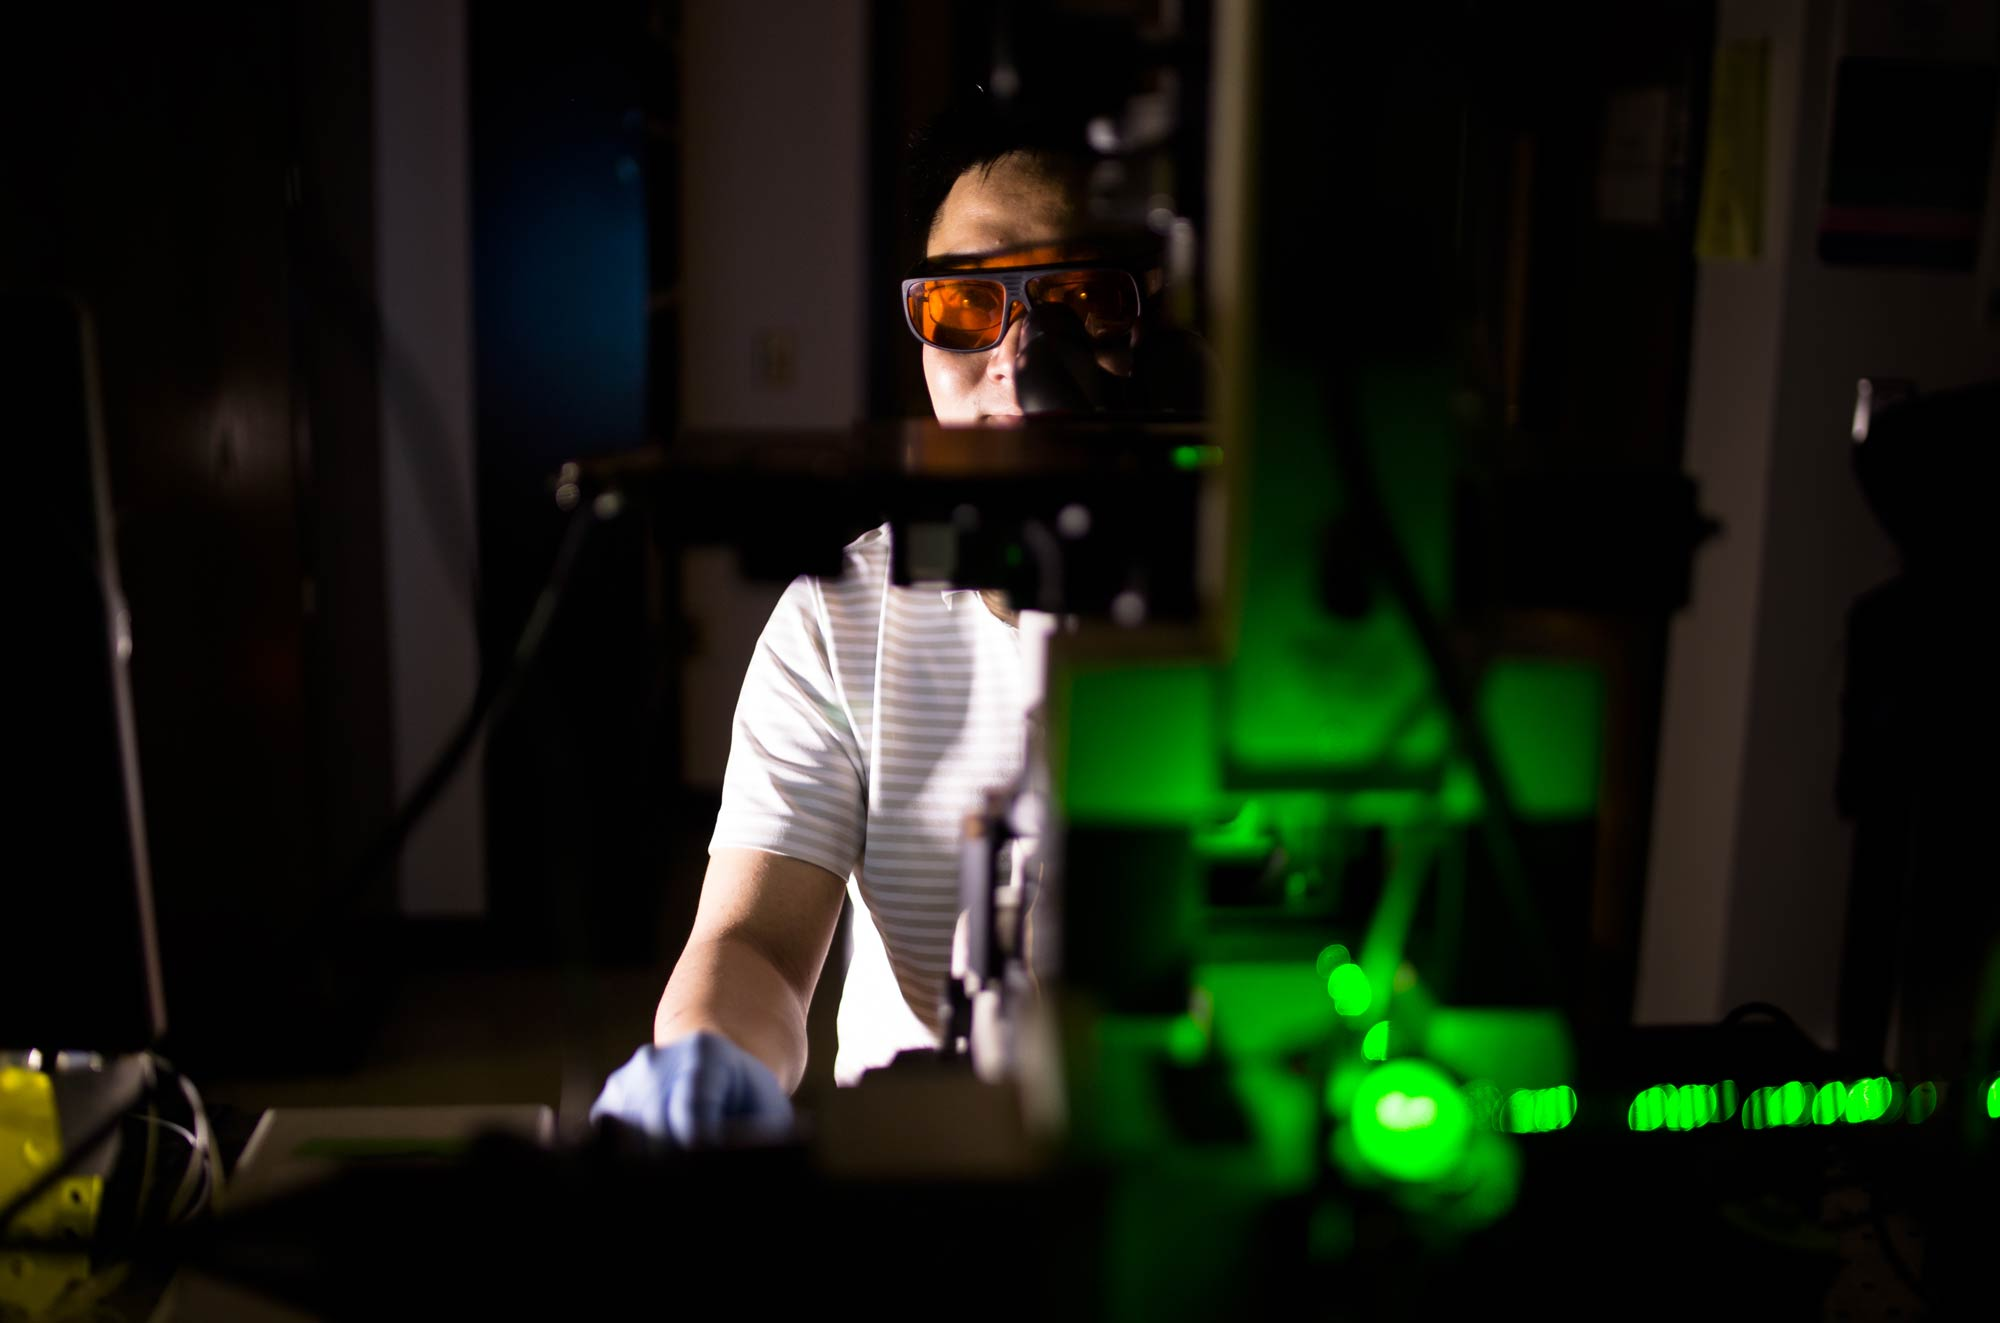 Yu-Chih Chen, a research scientist in electrical engineering and computer science, helped to develop a chip that can gently release individual cells, targeted with extremely short laser pulses. Image credit: Evan Dougherty, Michigan Engineering